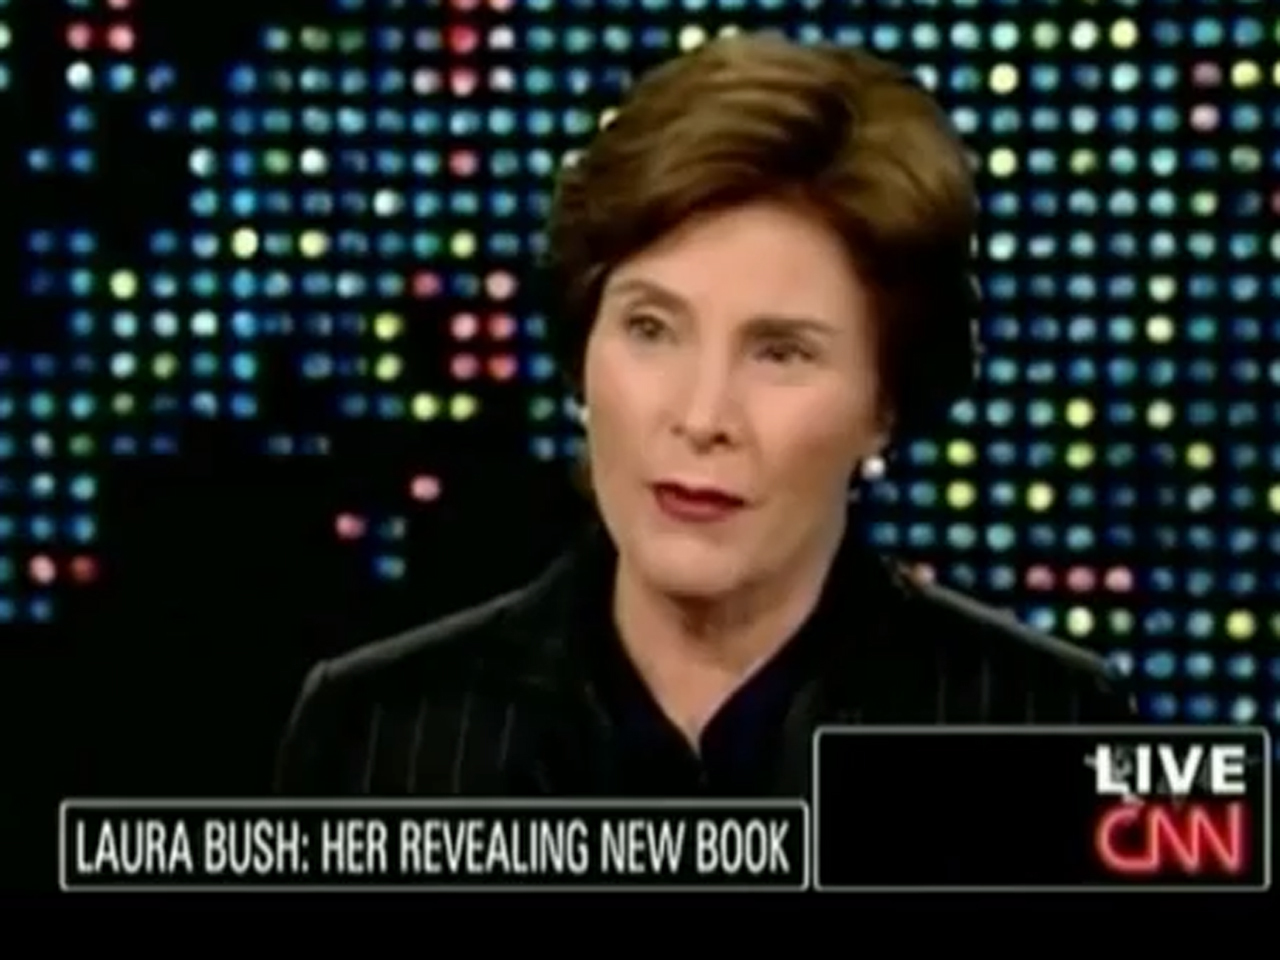 Laura Bush asks to be removed from pro-gay marriage ad - CBS .